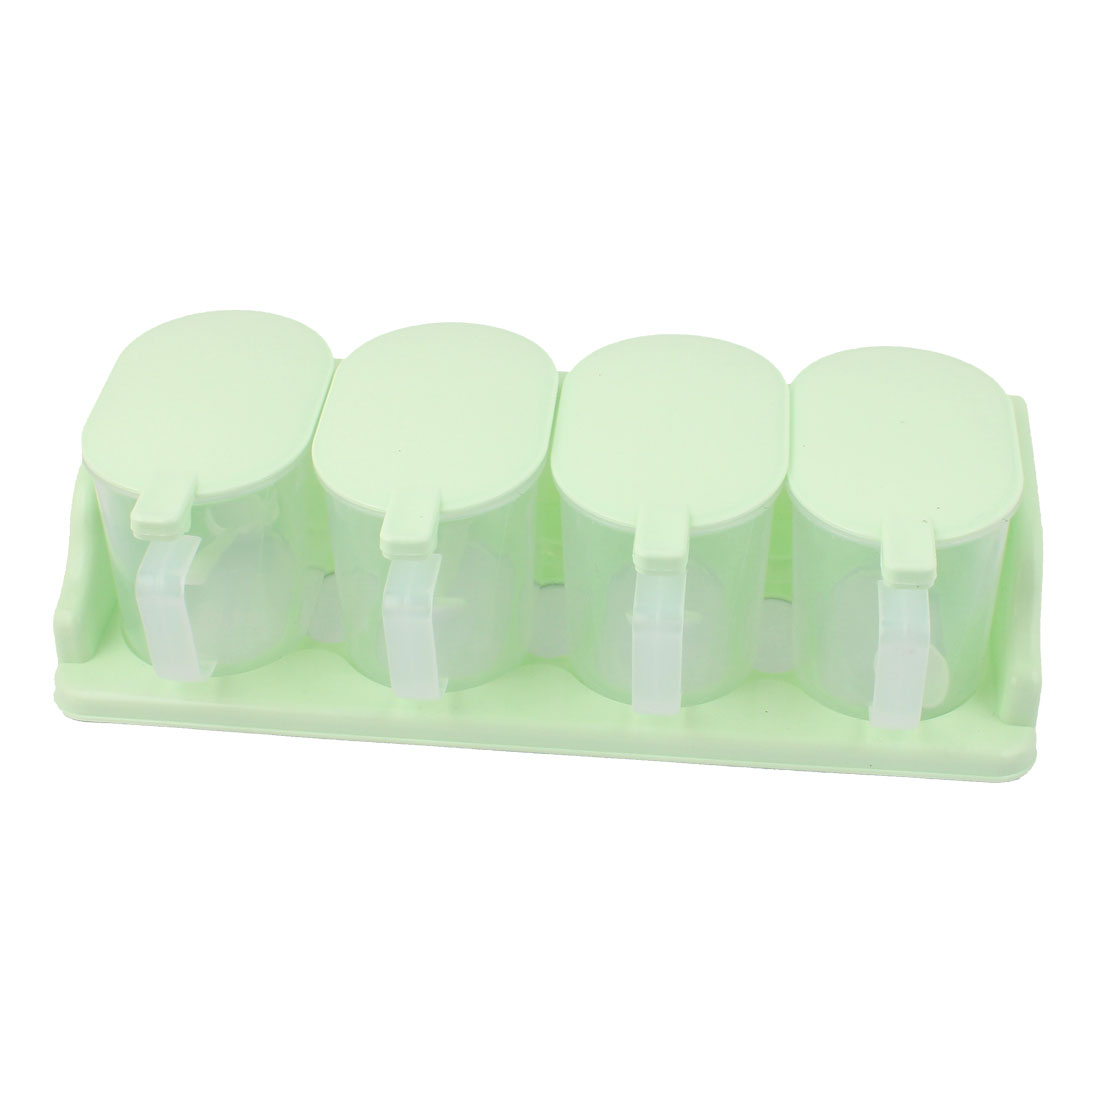 Green 4 Compartment Sauce Pepper Salt Holder Case w Spoons for Kitchen